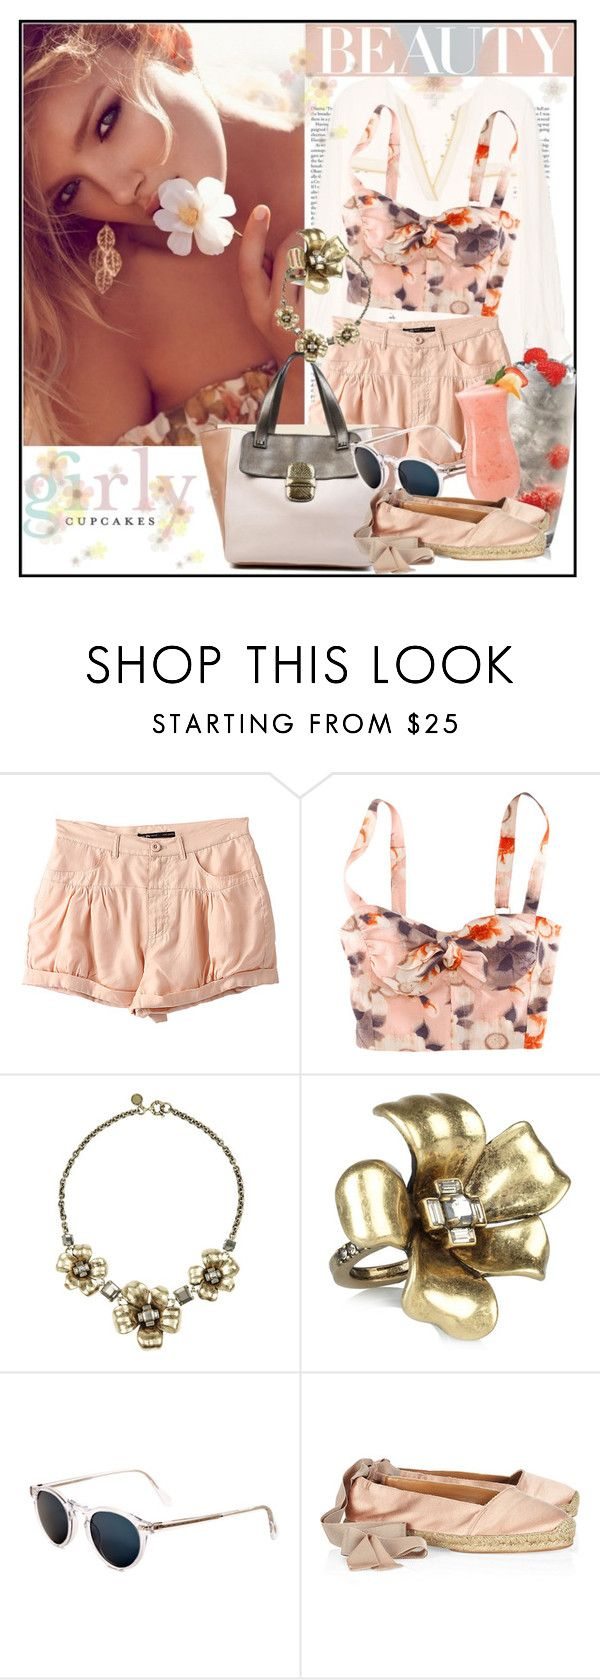 """""""Girl"""" by drn57 ❤ liked on Polyvore featuring H&M, Marc by Marc Jacobs, Behance, House of Fraser, Oliver Peoples, Lanvin, pastels, nude, soft and lanvin shoes"""